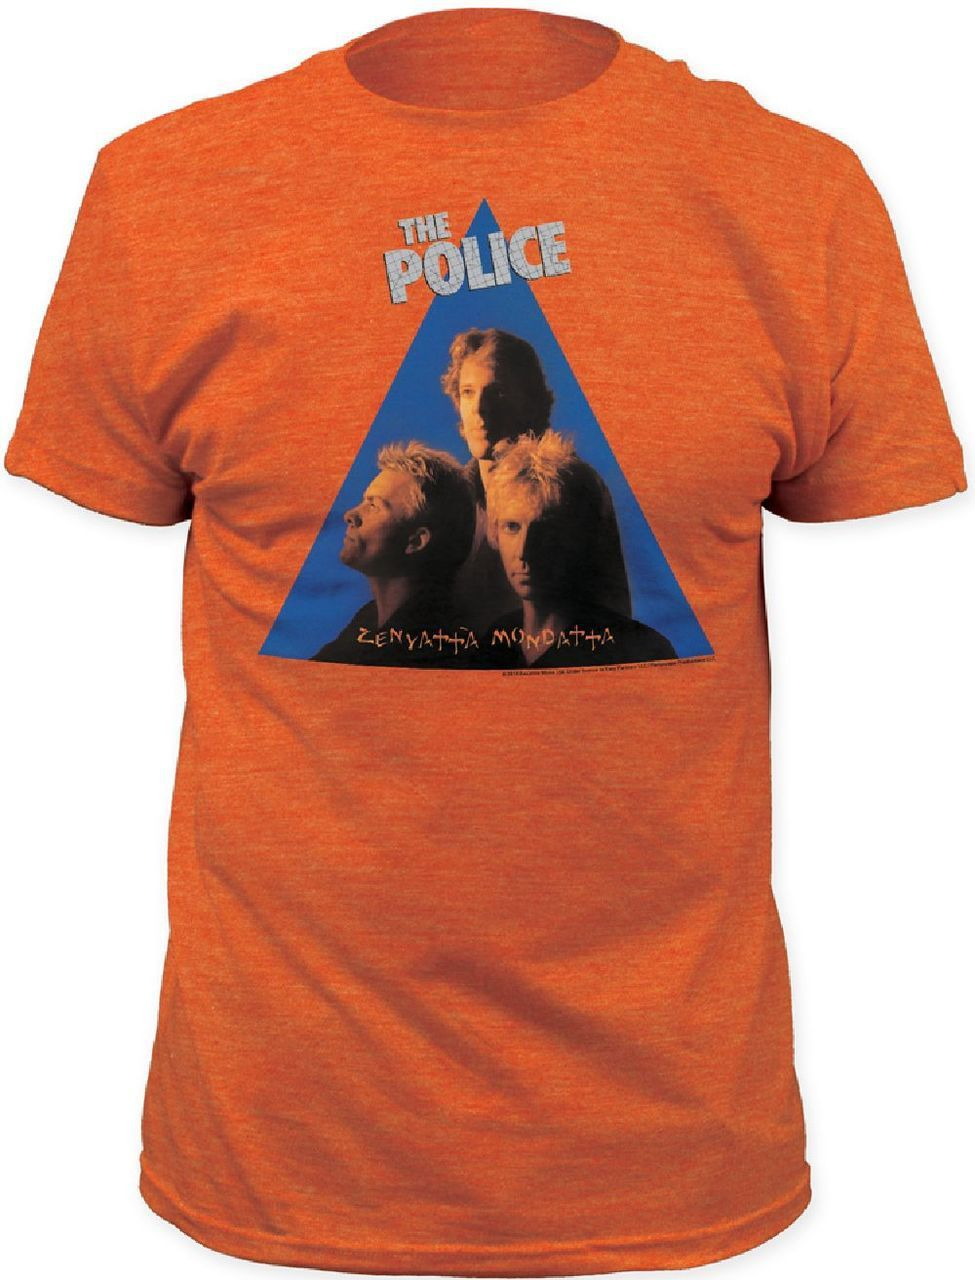 Outlandos D/'Amour Amplified The Police Women/'s Charcoal T-Shirt